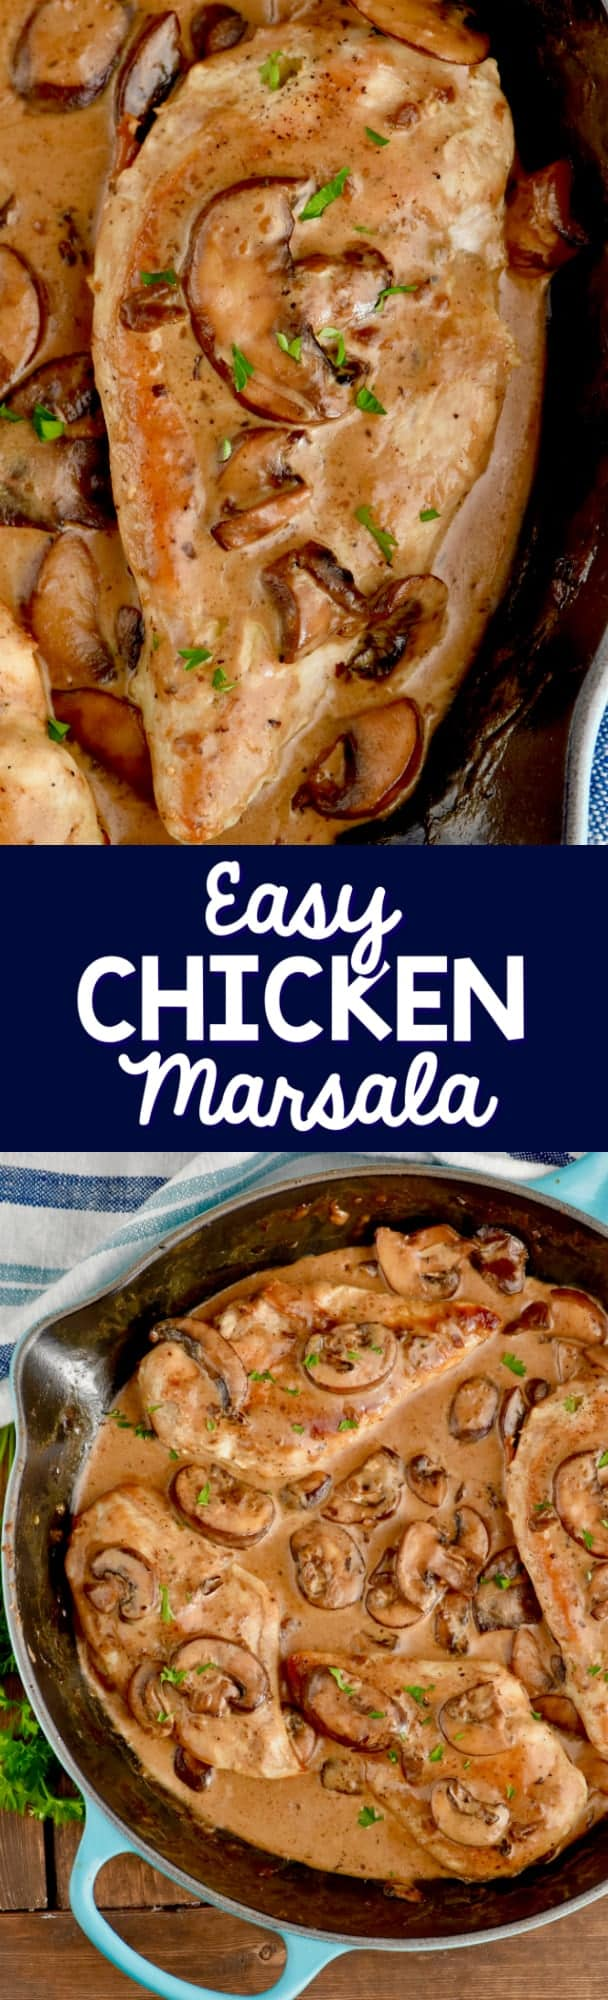 Close up photos of the Easy Chicken Marsala which is a golden brown color topped with creamy brown sauce and mushrooms.